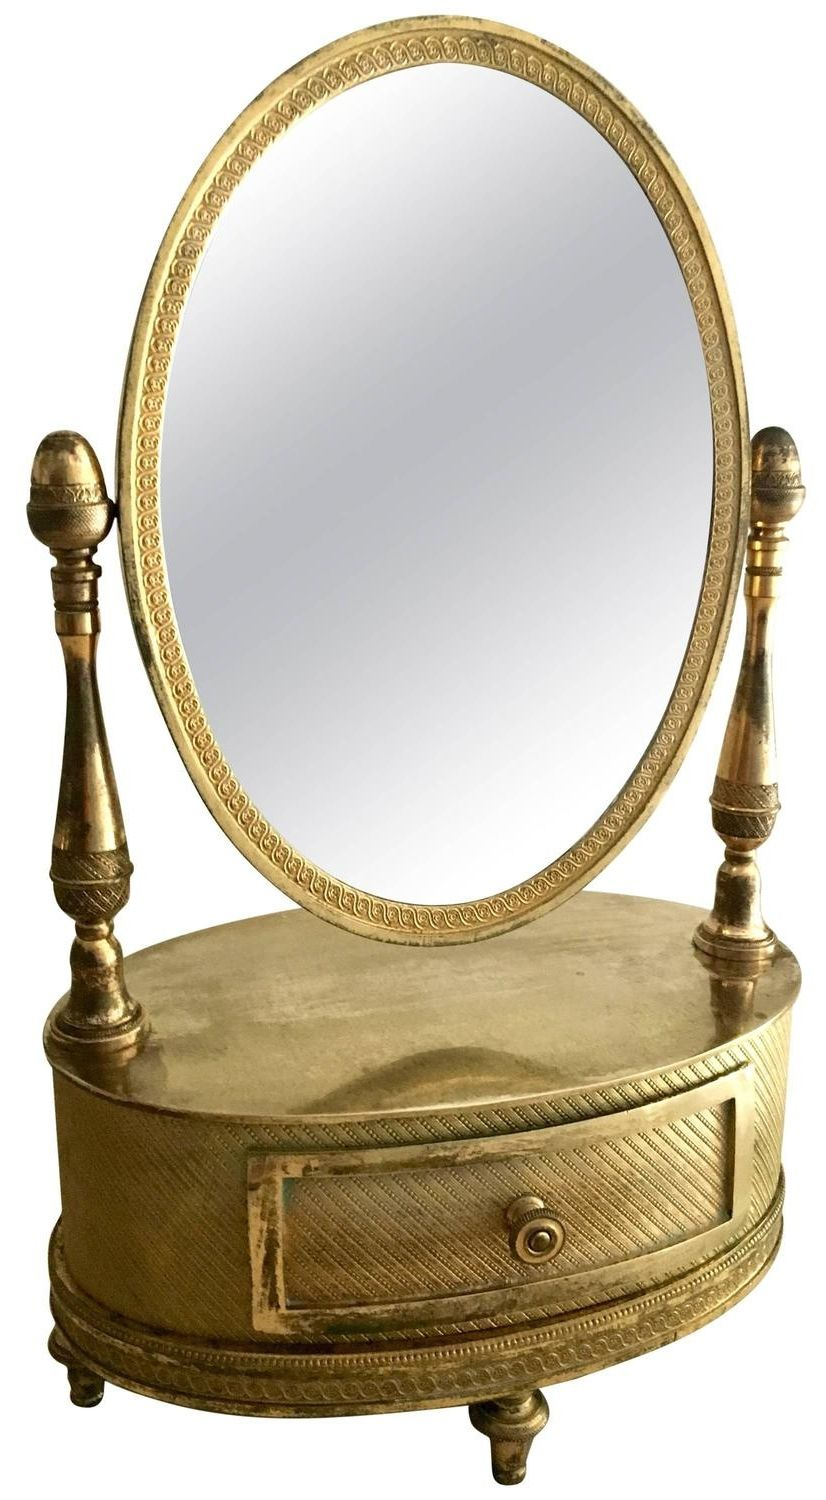 Modern dressing table mirrors french empire  furniture  pinterest  french empire